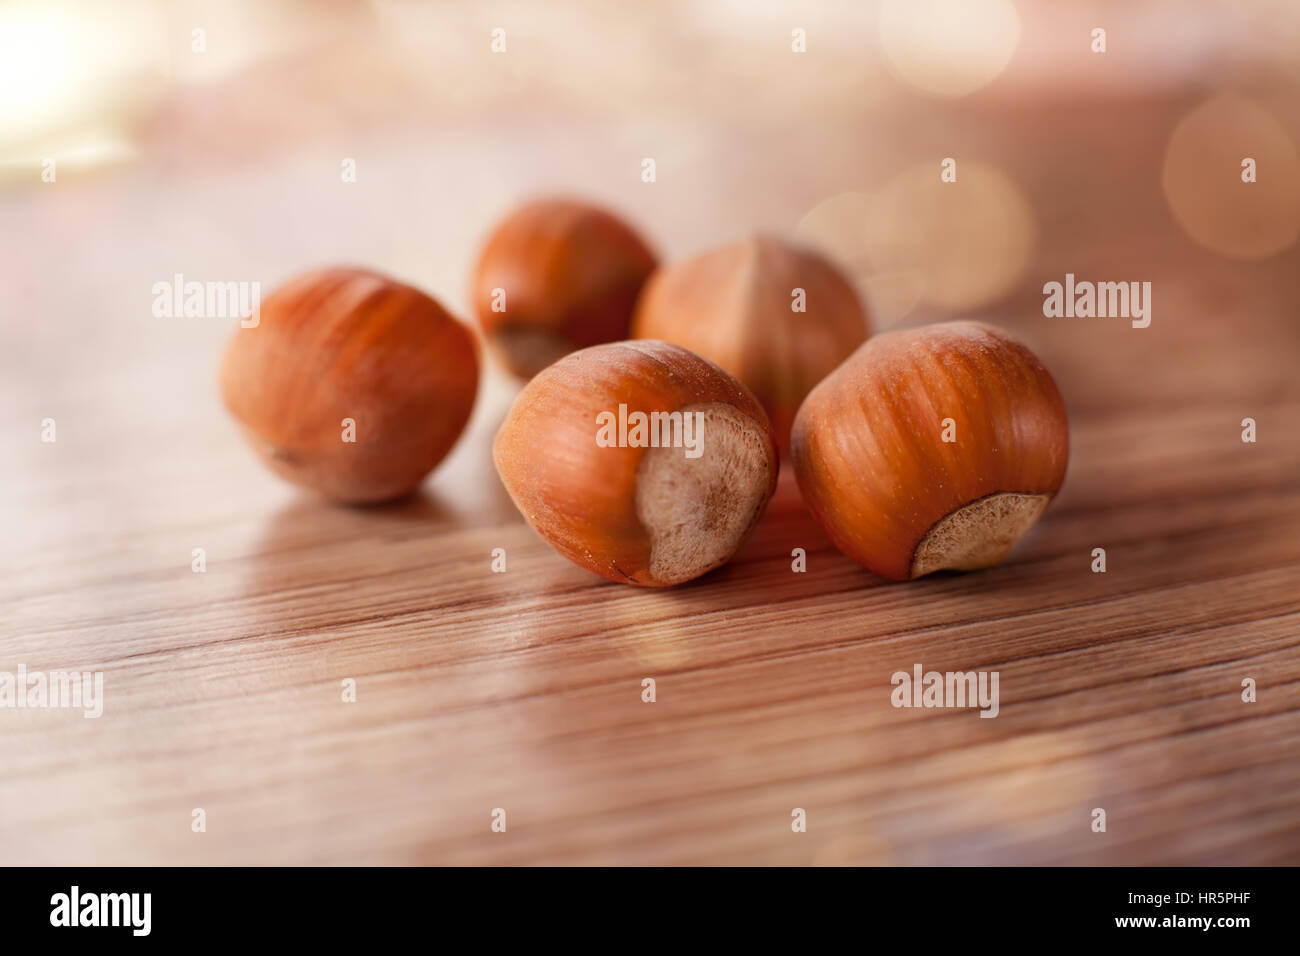 hazelnut close-up over the wooden table, soft shalow dof and bokeh, warm colors - Stock Image